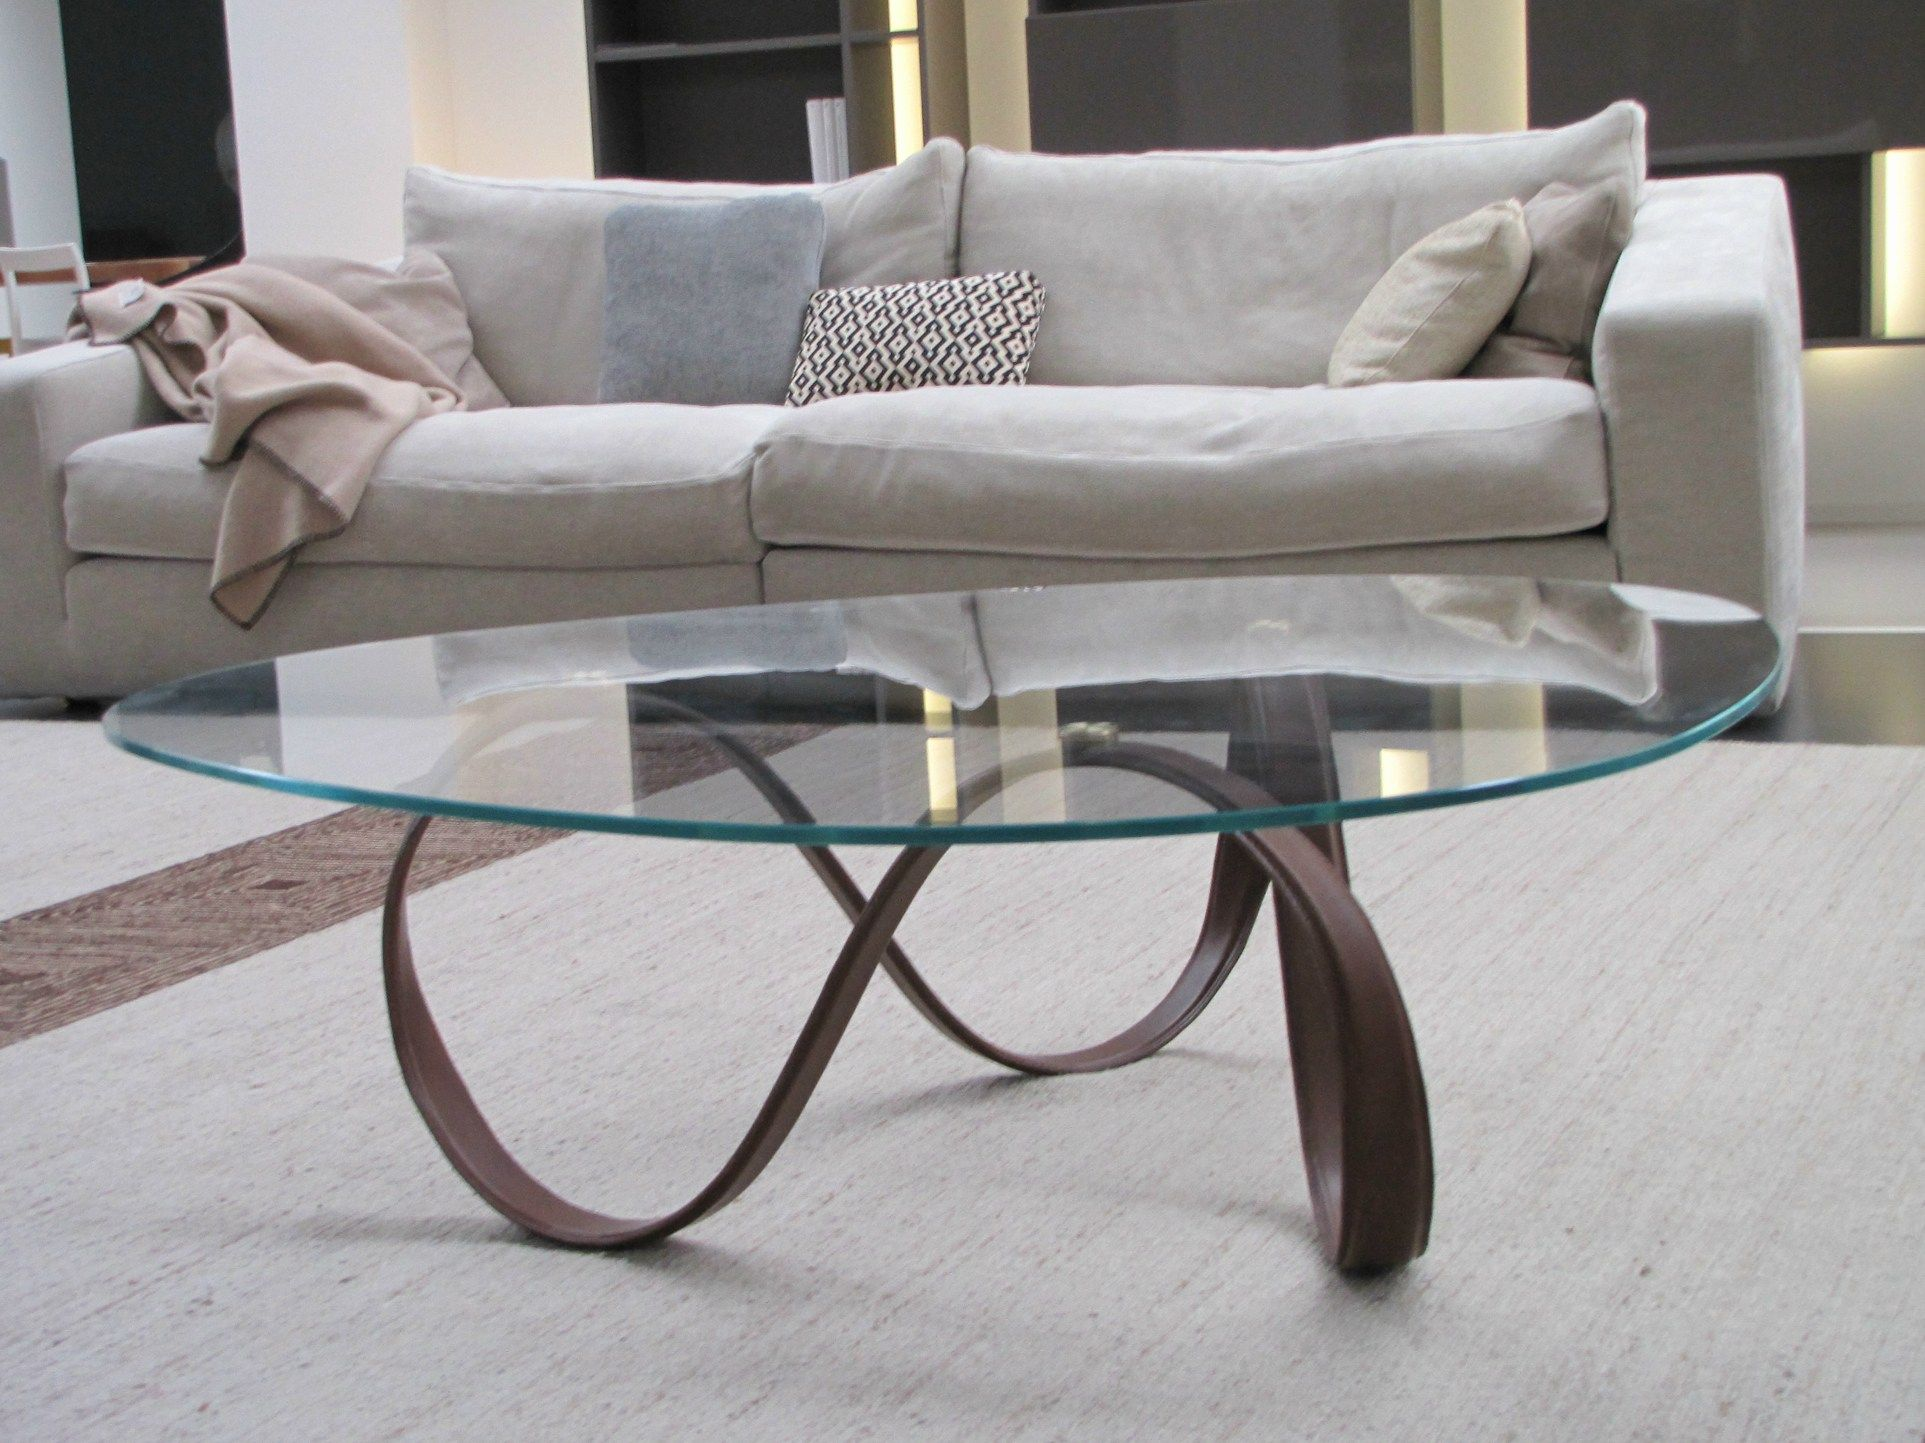 A Gl Coffee Table Inspired By The Latest Contemporary Trends